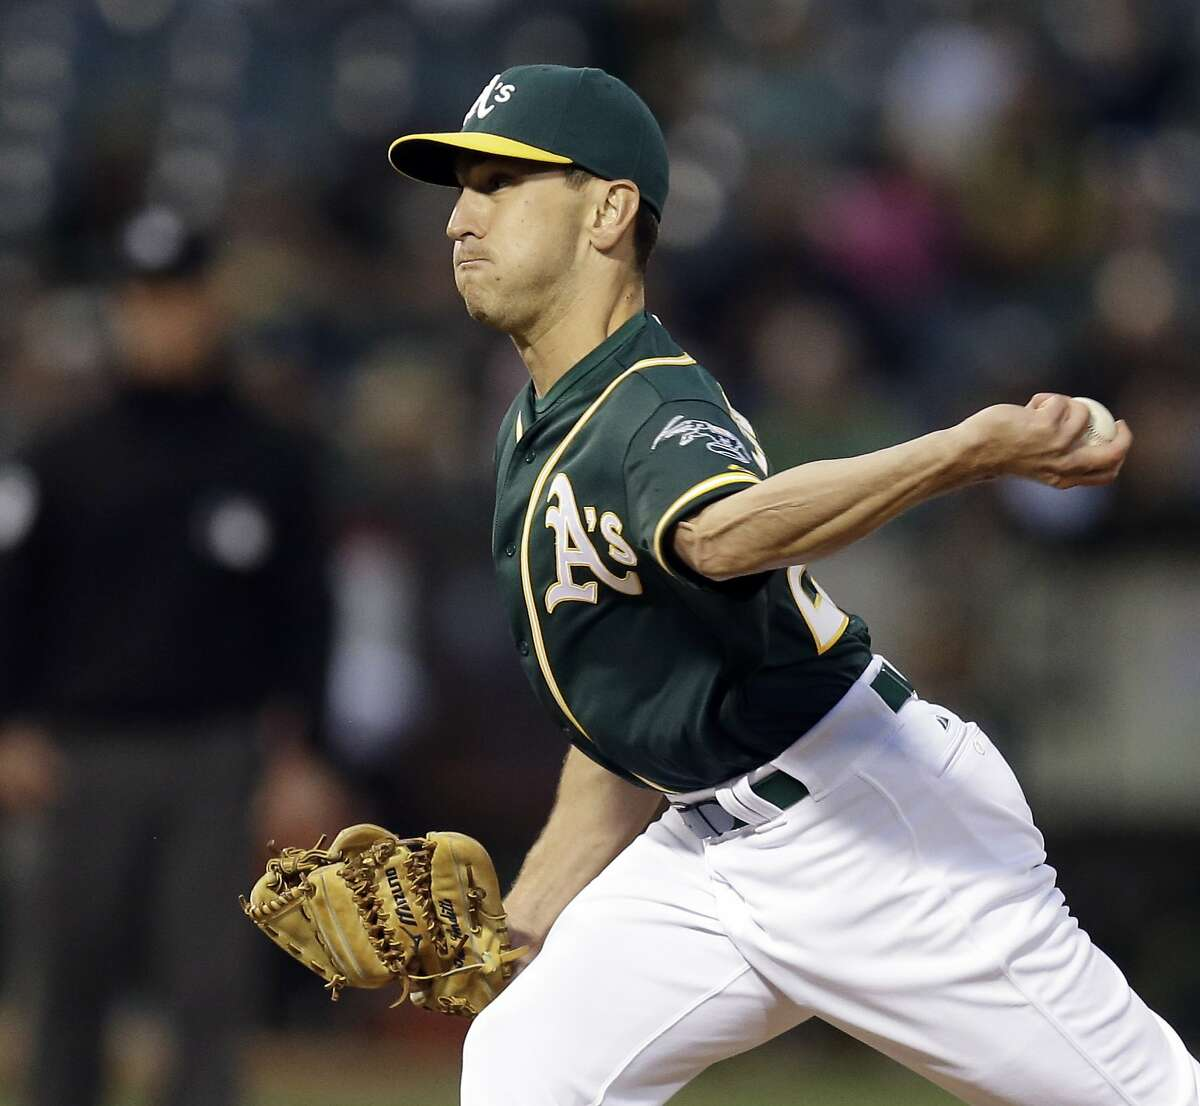 Oakland Athletics pitcher Pat Venditte works against the Texas Rangers in the fourth inning of a baseball game Wednesday, June 10, 2015, in Oakland, Calif. (AP Photo/Ben Margot)